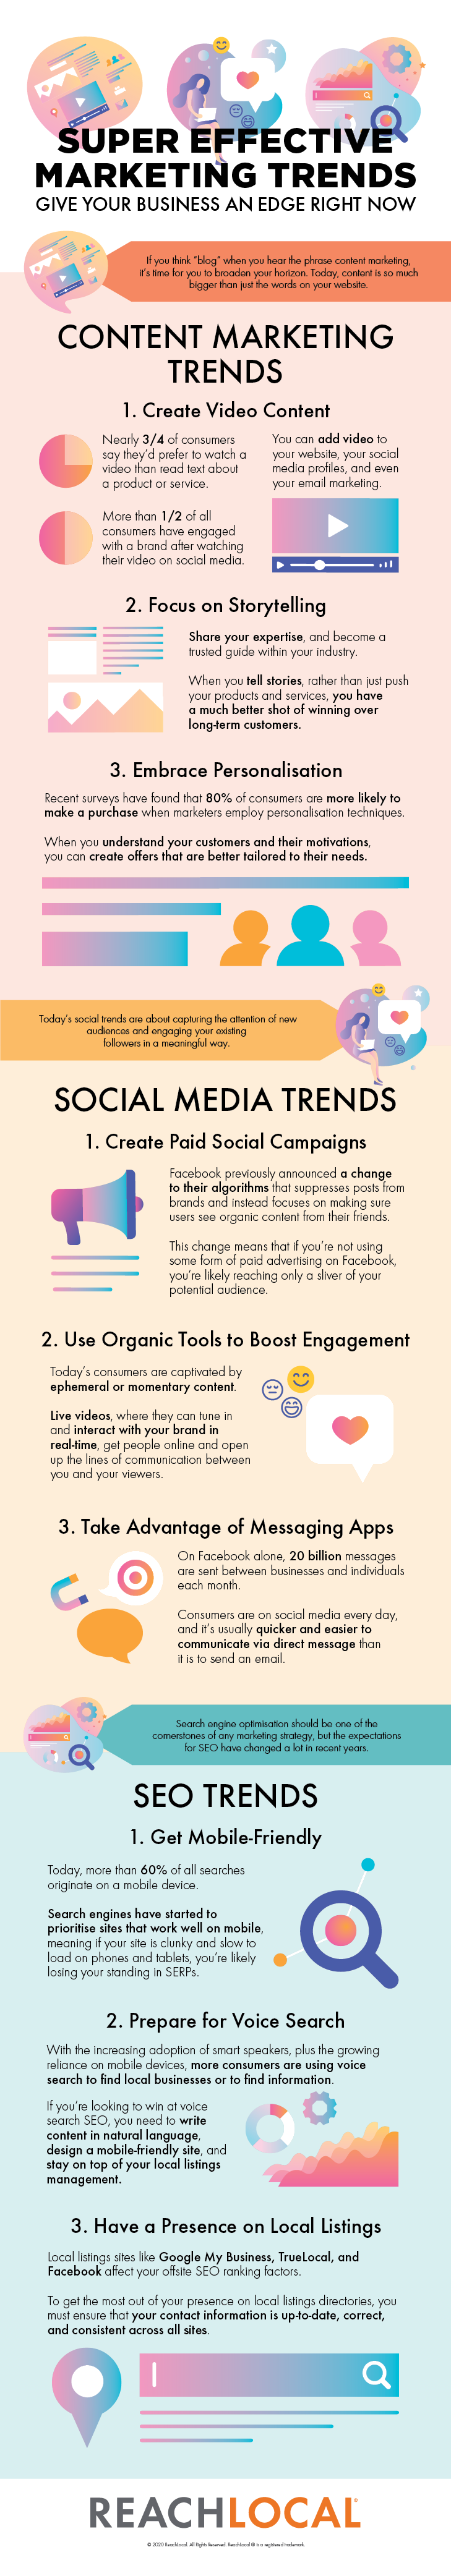 Infographic on marketing trends to give your business an edge